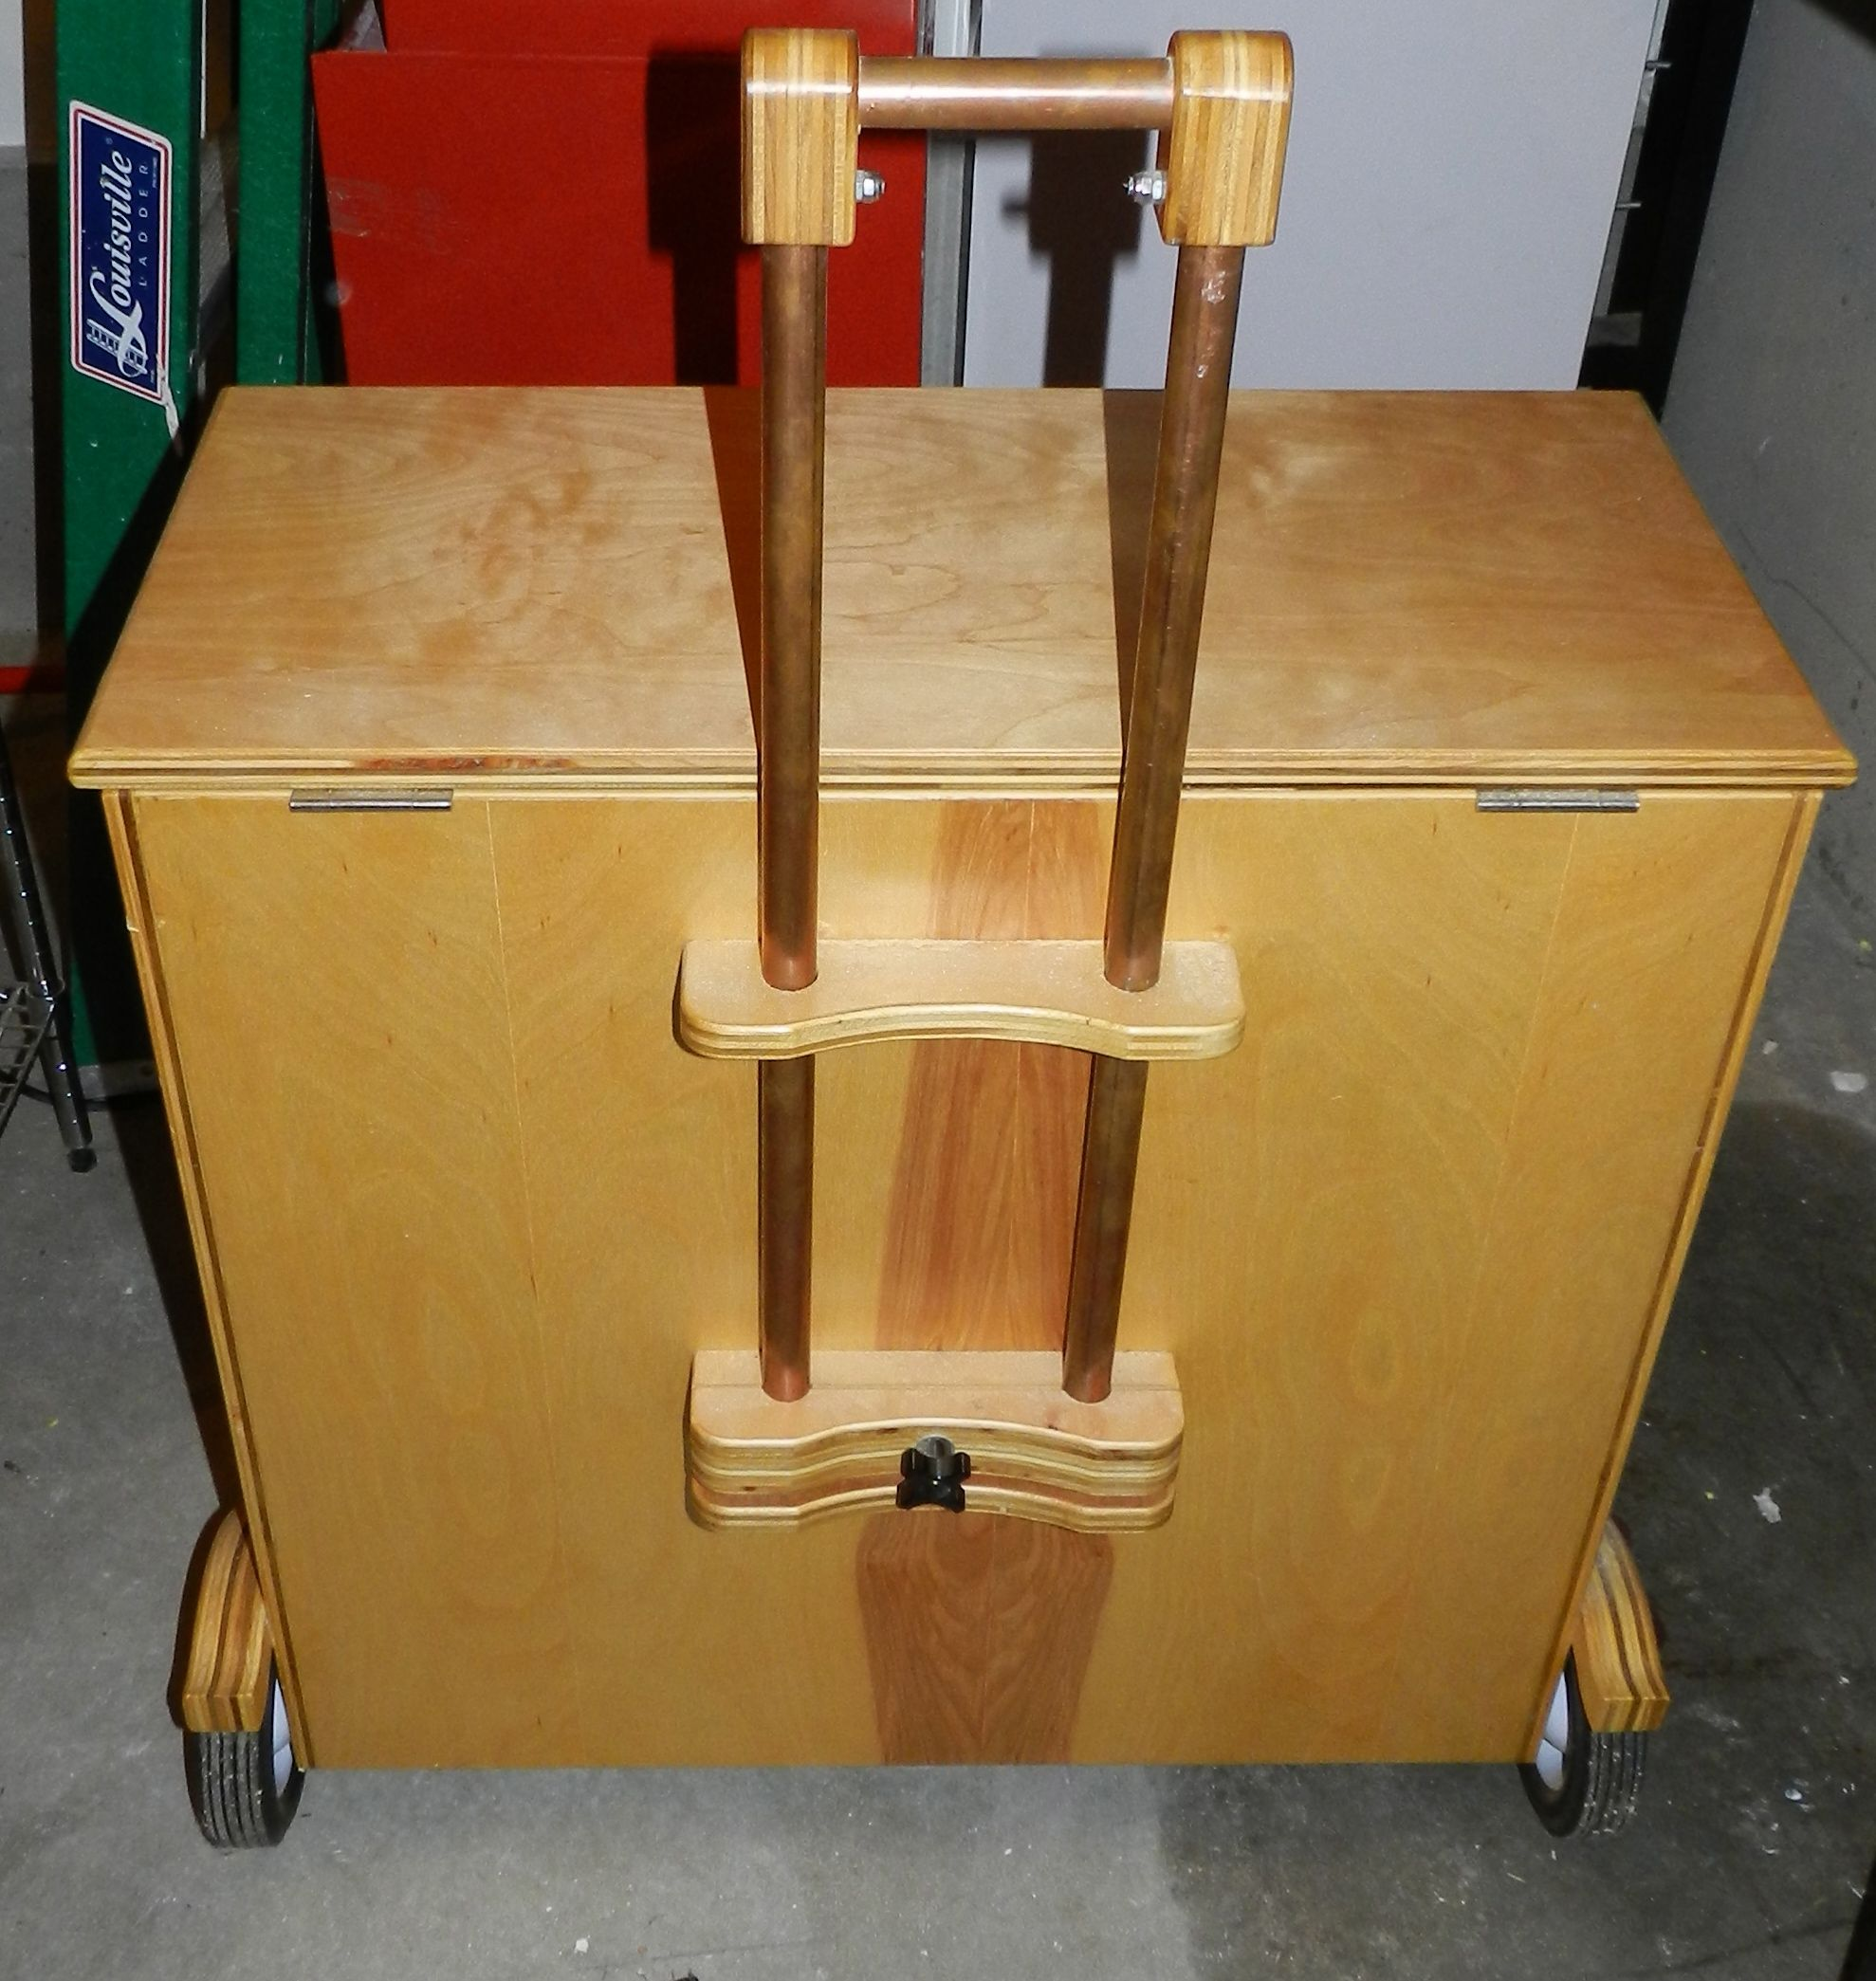 Tools For Diy Projects Diy Plywood Rolling Tool Case With Telescoping Handle And Drawers